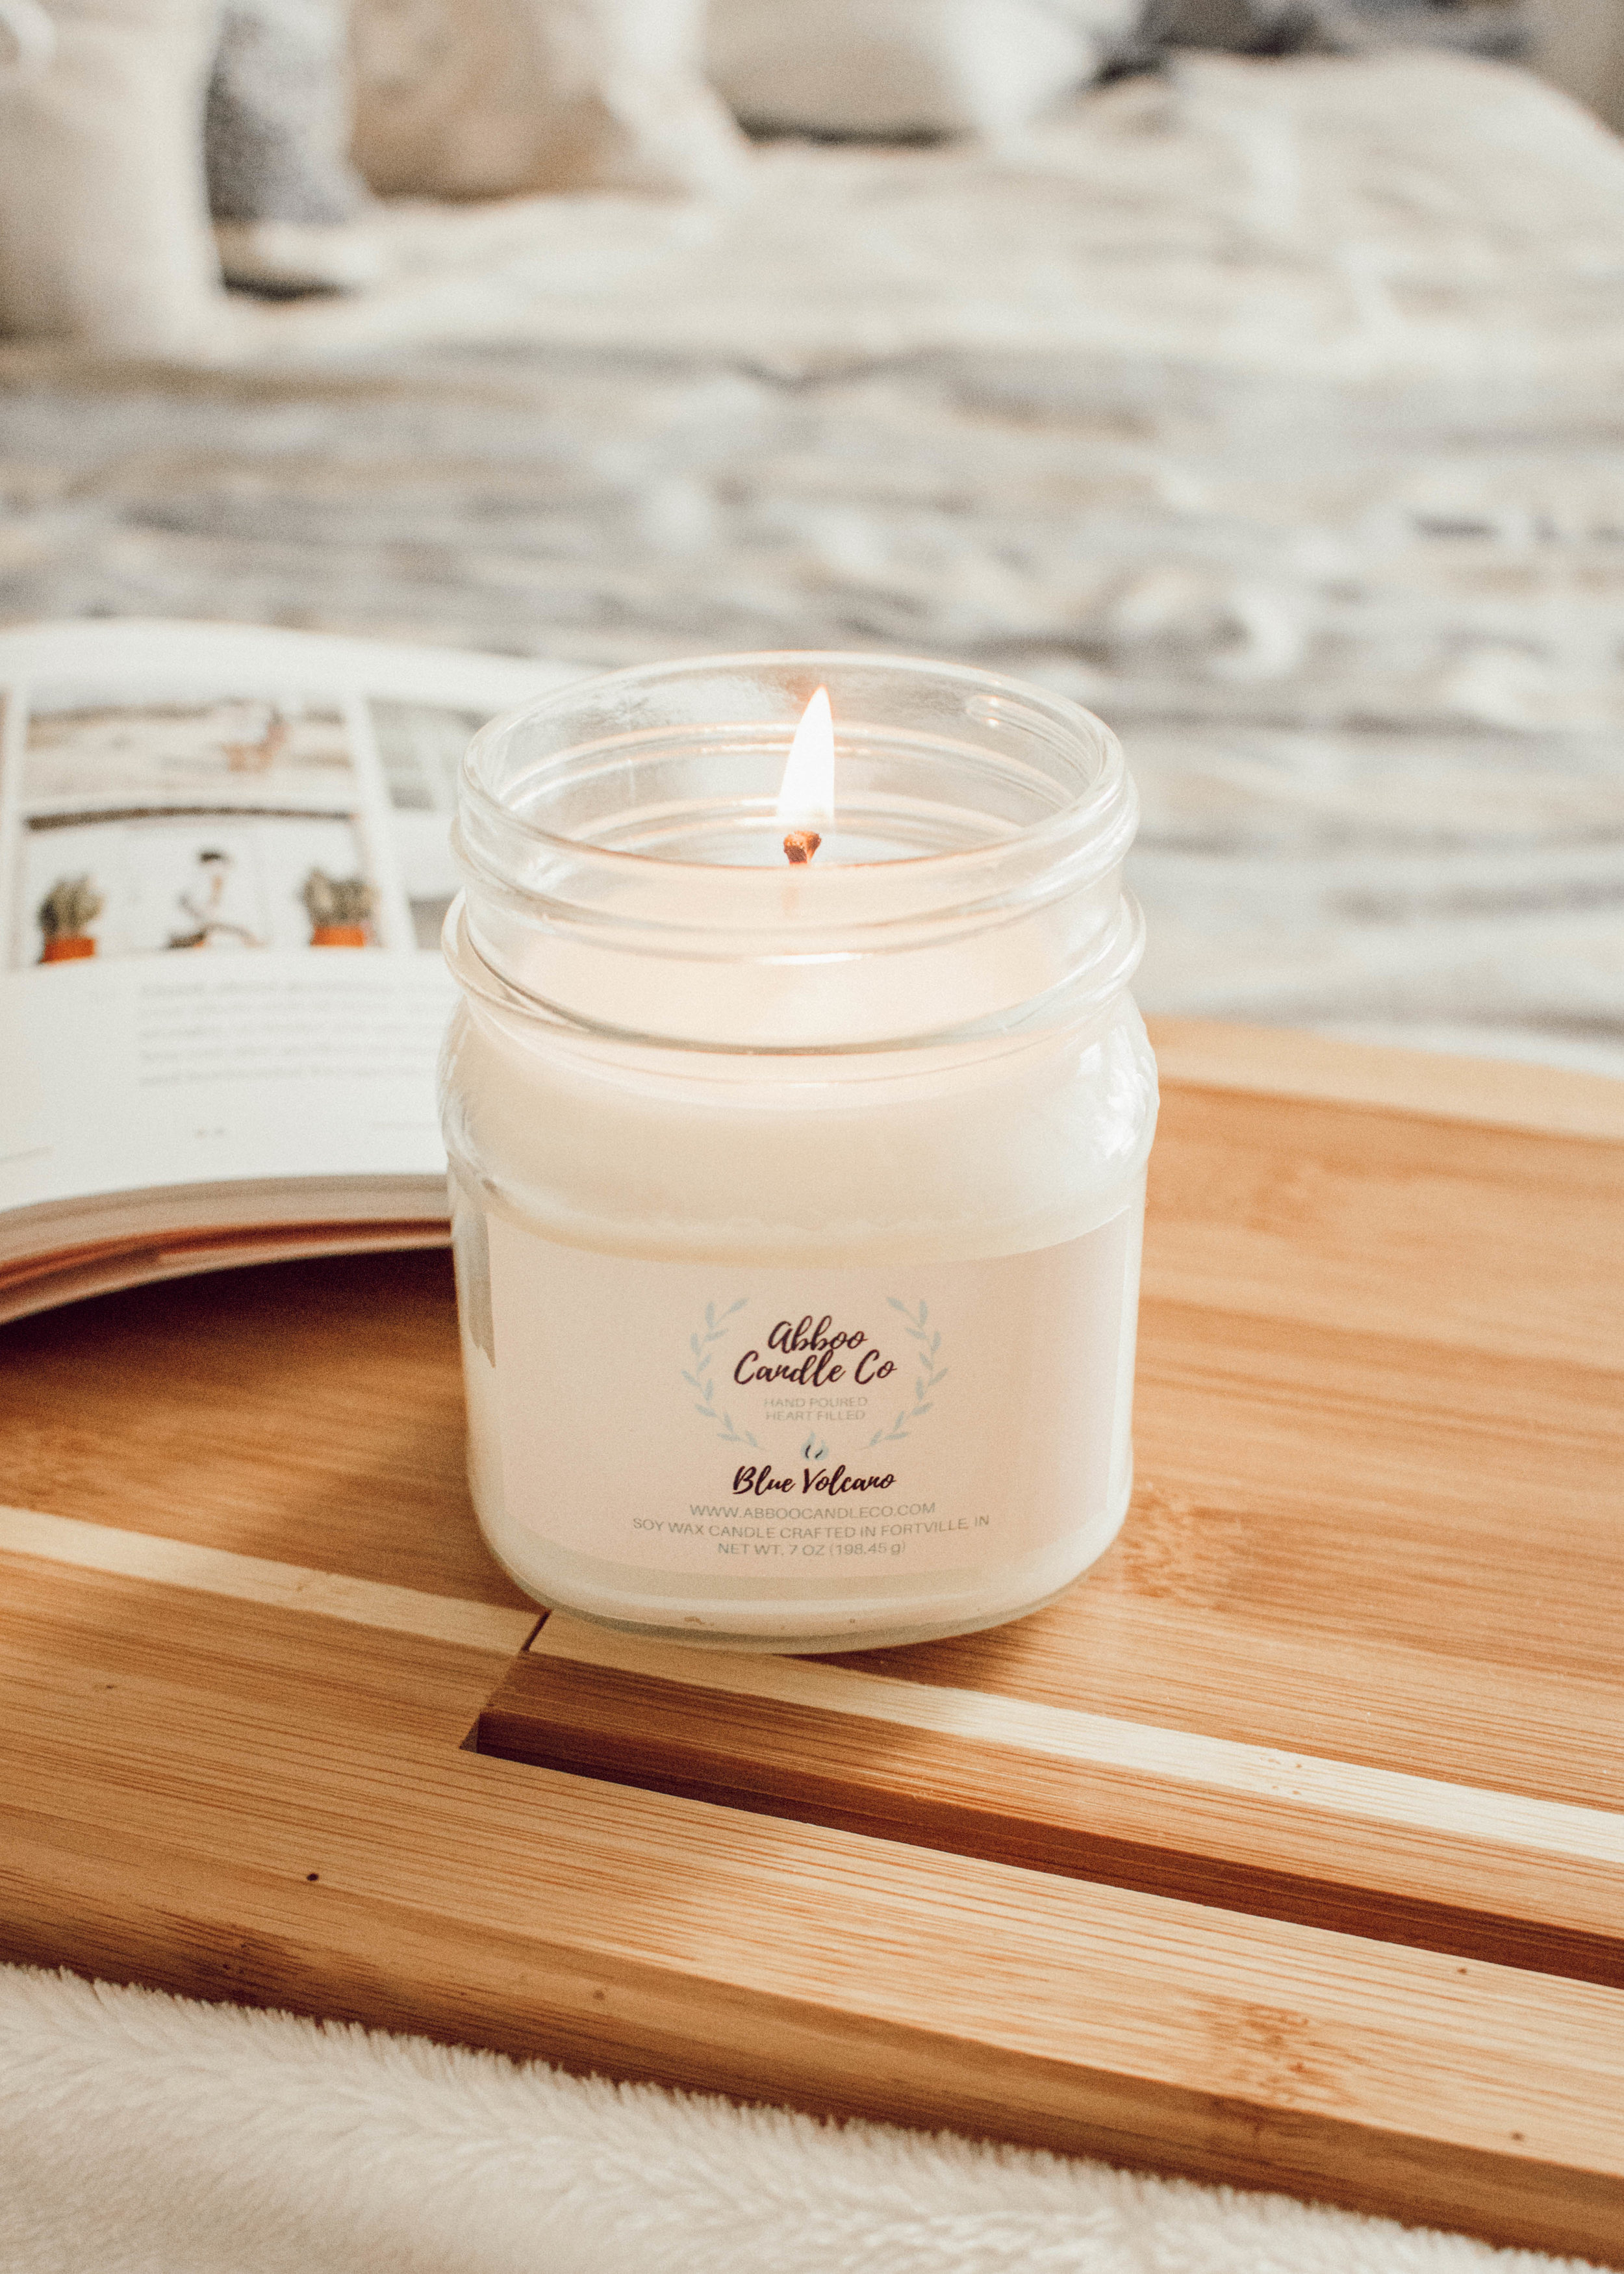 Spring Cleaning Tips with Abboo Candle Co. by popular Indianapolis blogger Trendy in Indy